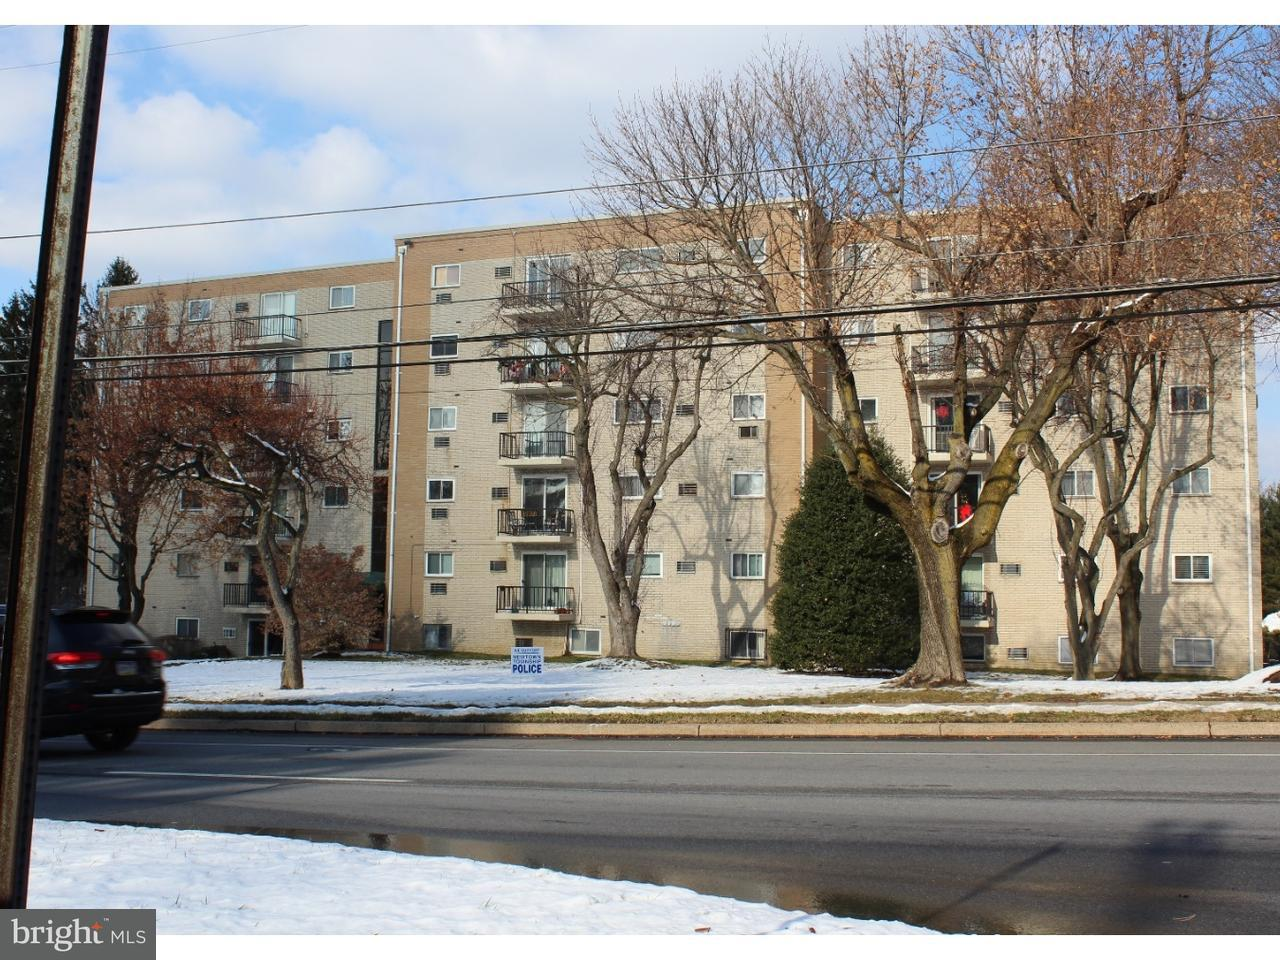 3421  West Chester Newtown Square, PA 19073